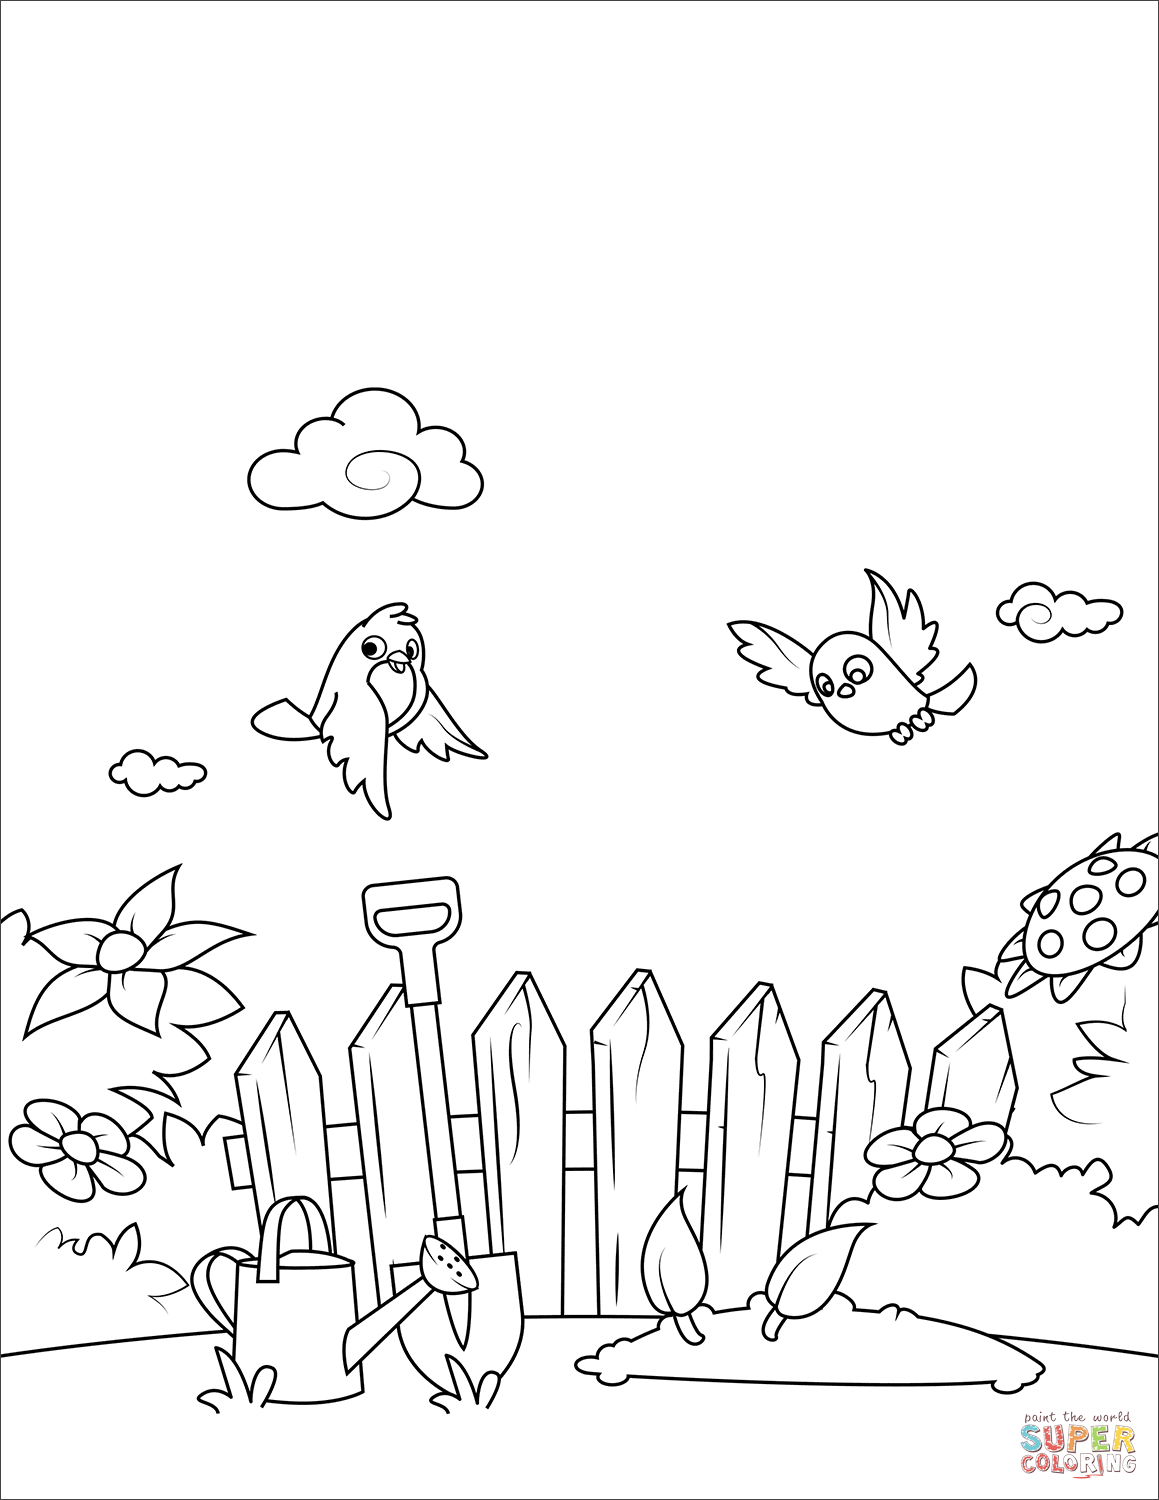 Birds Fly Over The Garden Coloring Page